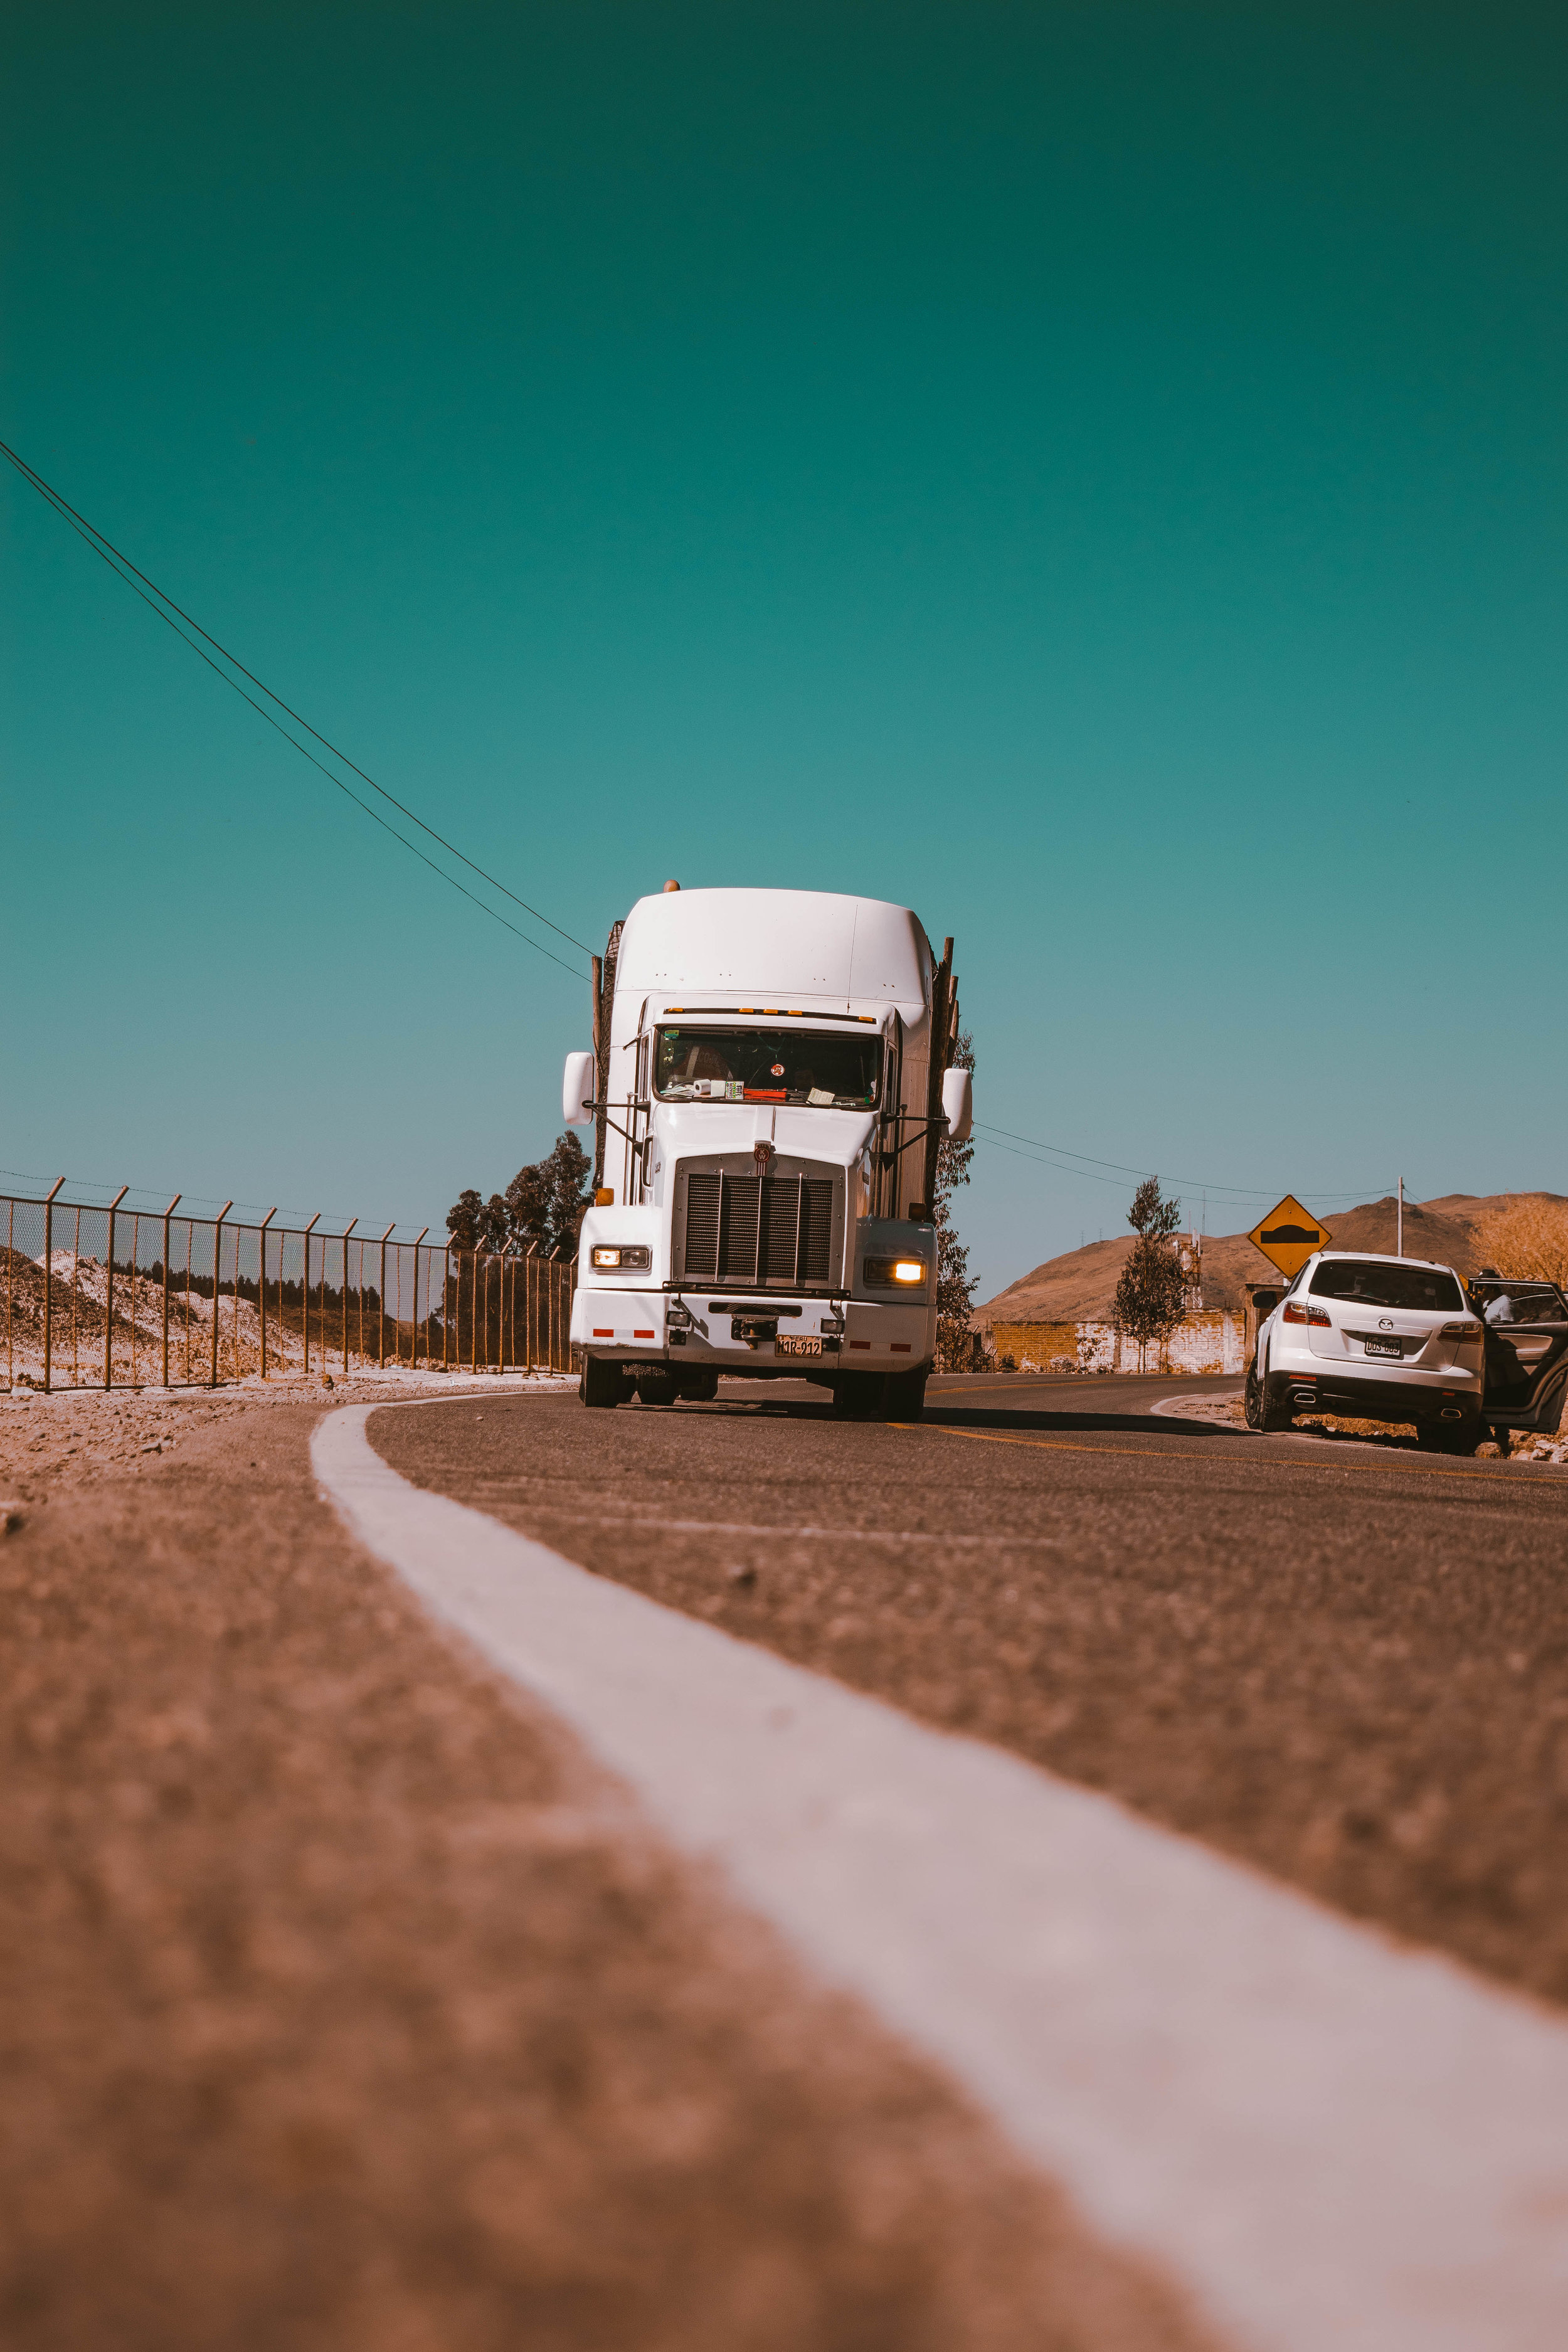 How can policy help decarbonise transport's most challenging areas? -